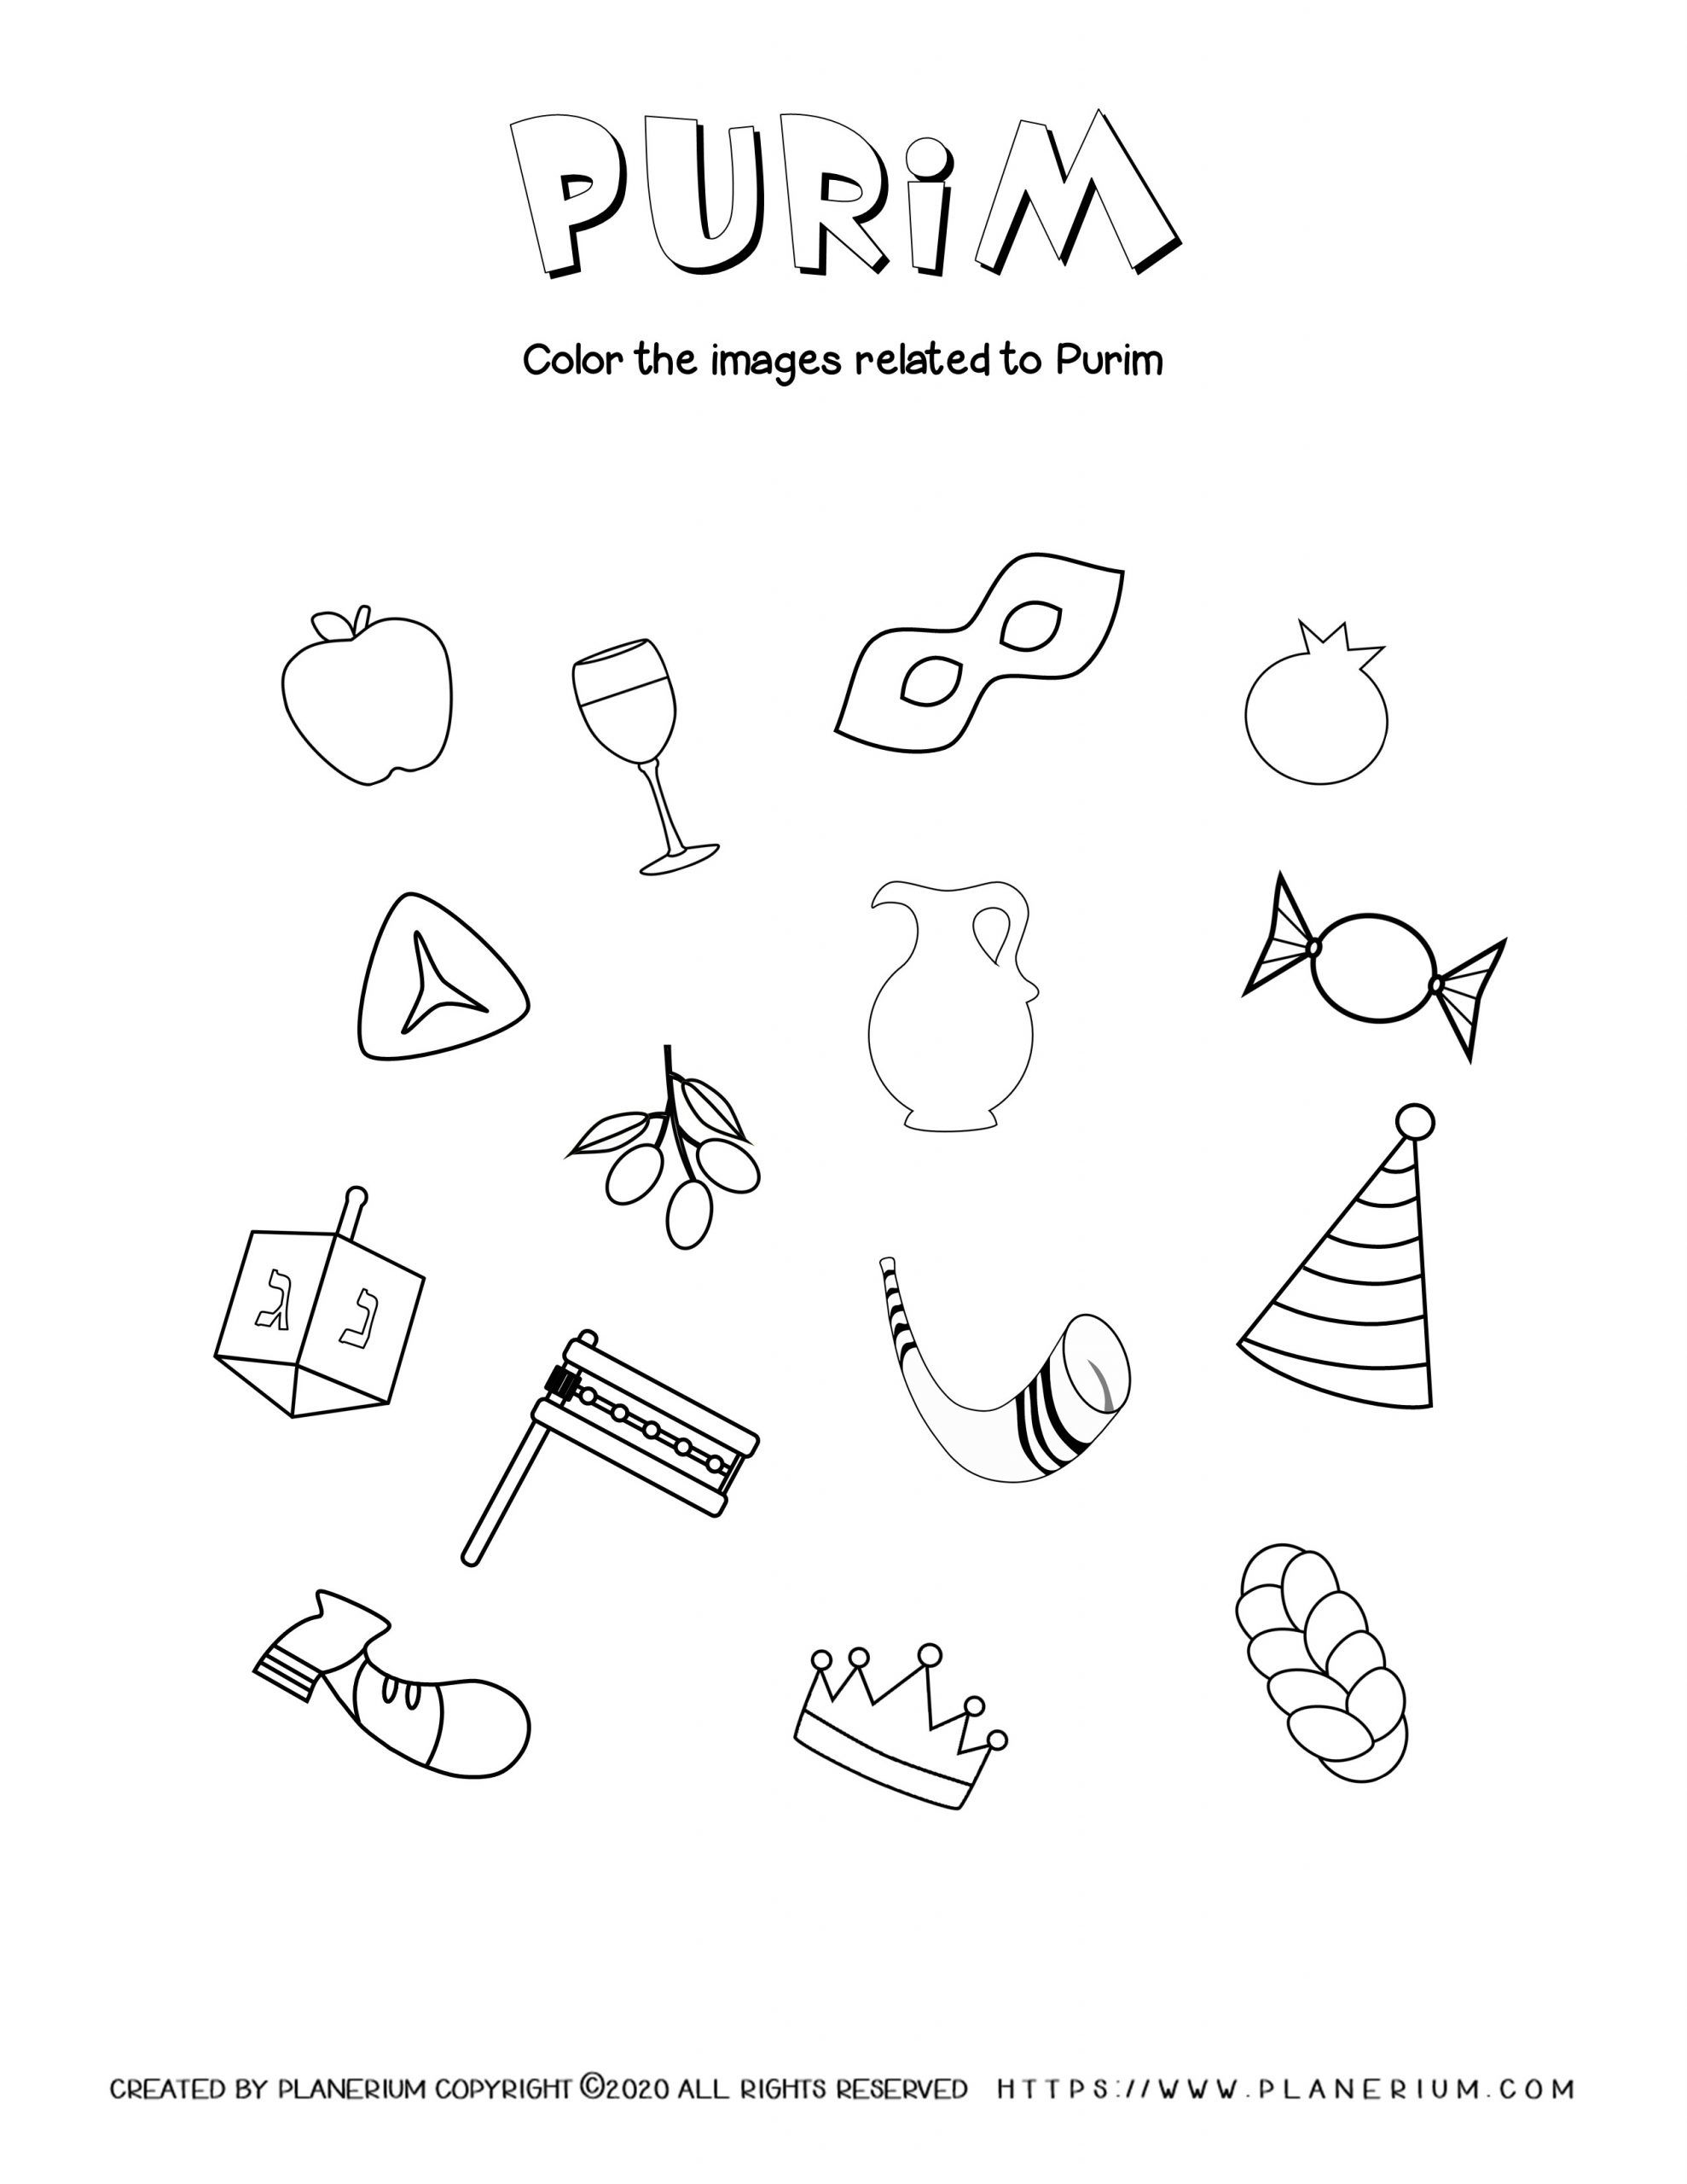 Purim - Coloring - Holiday related items | Planerium